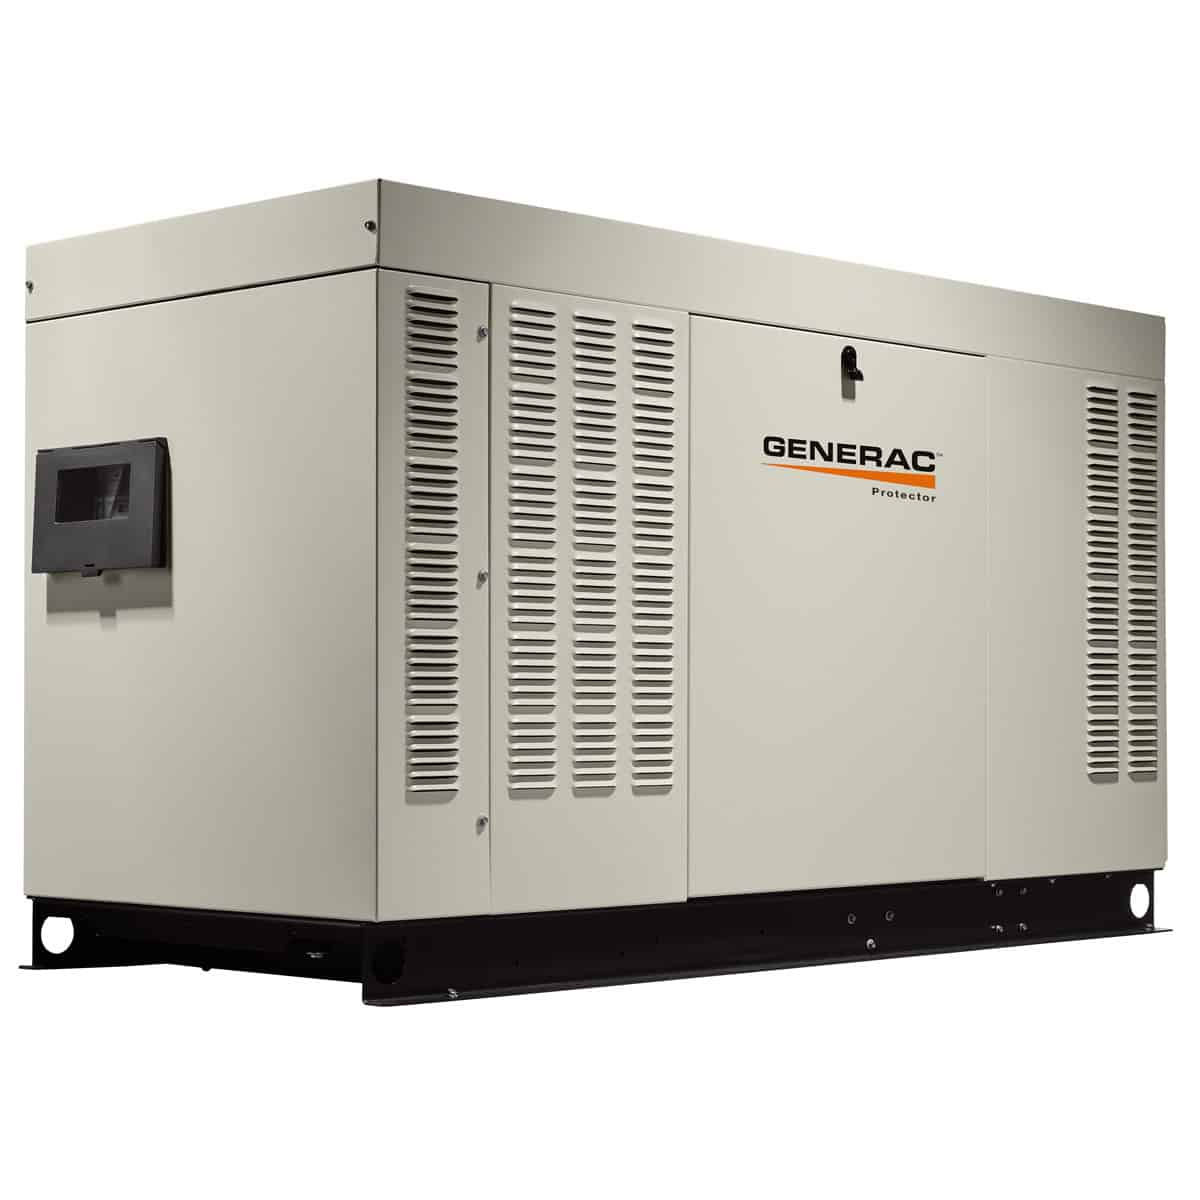 hight resolution of generac 48kw generator protector series ng lp norwall powersystems norwall powersystems